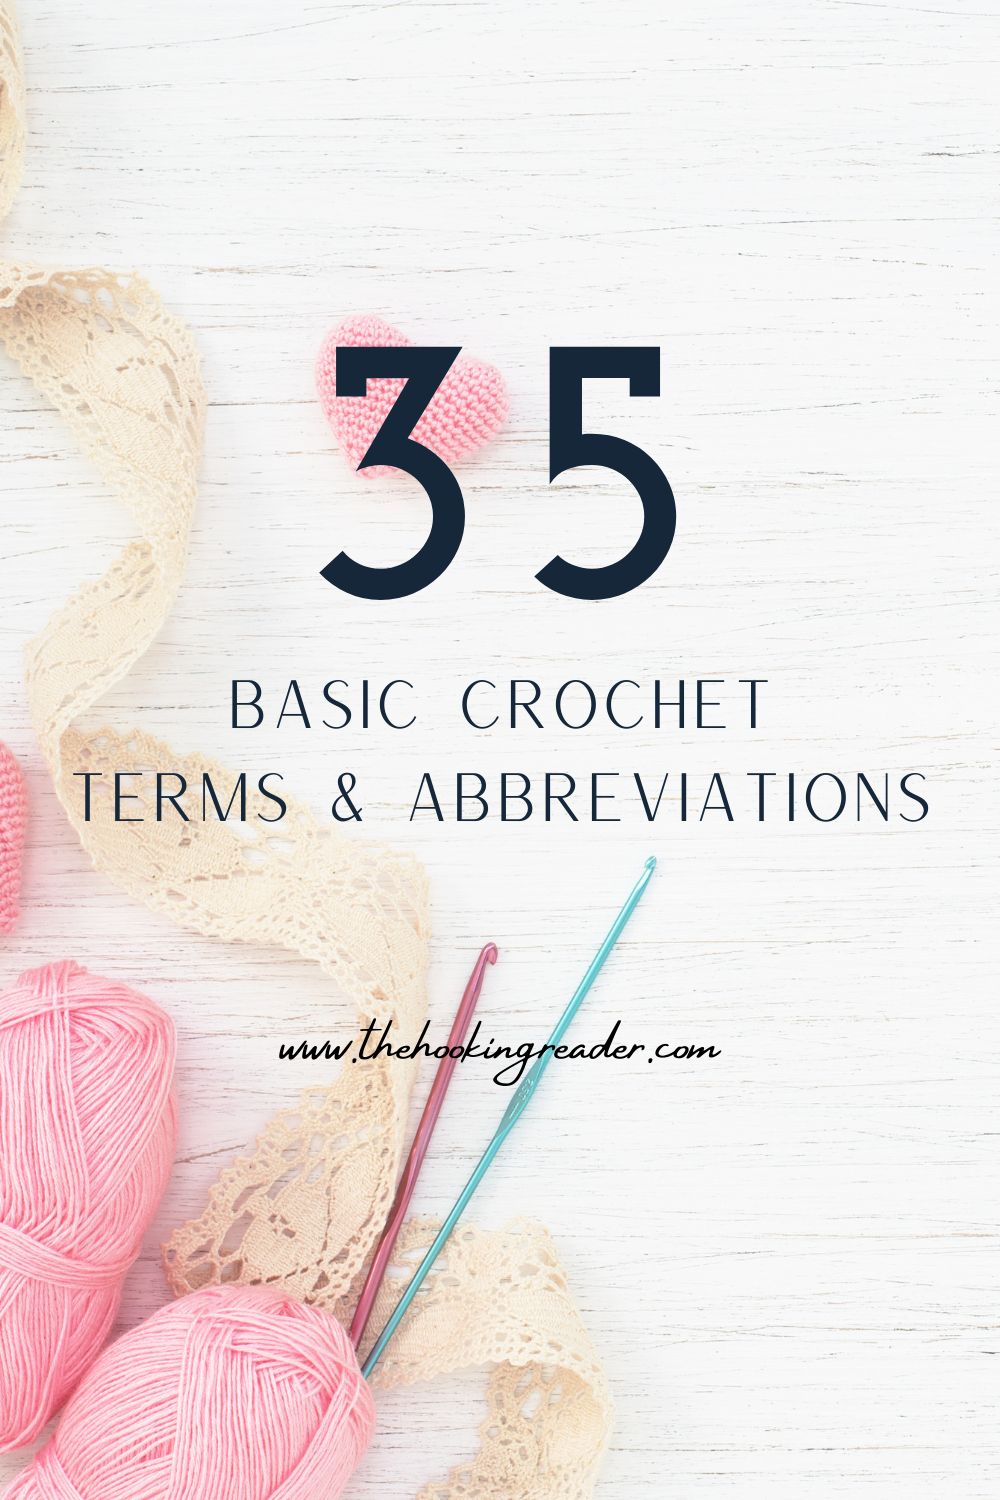 Basic Crochet Terms and Abbreviations